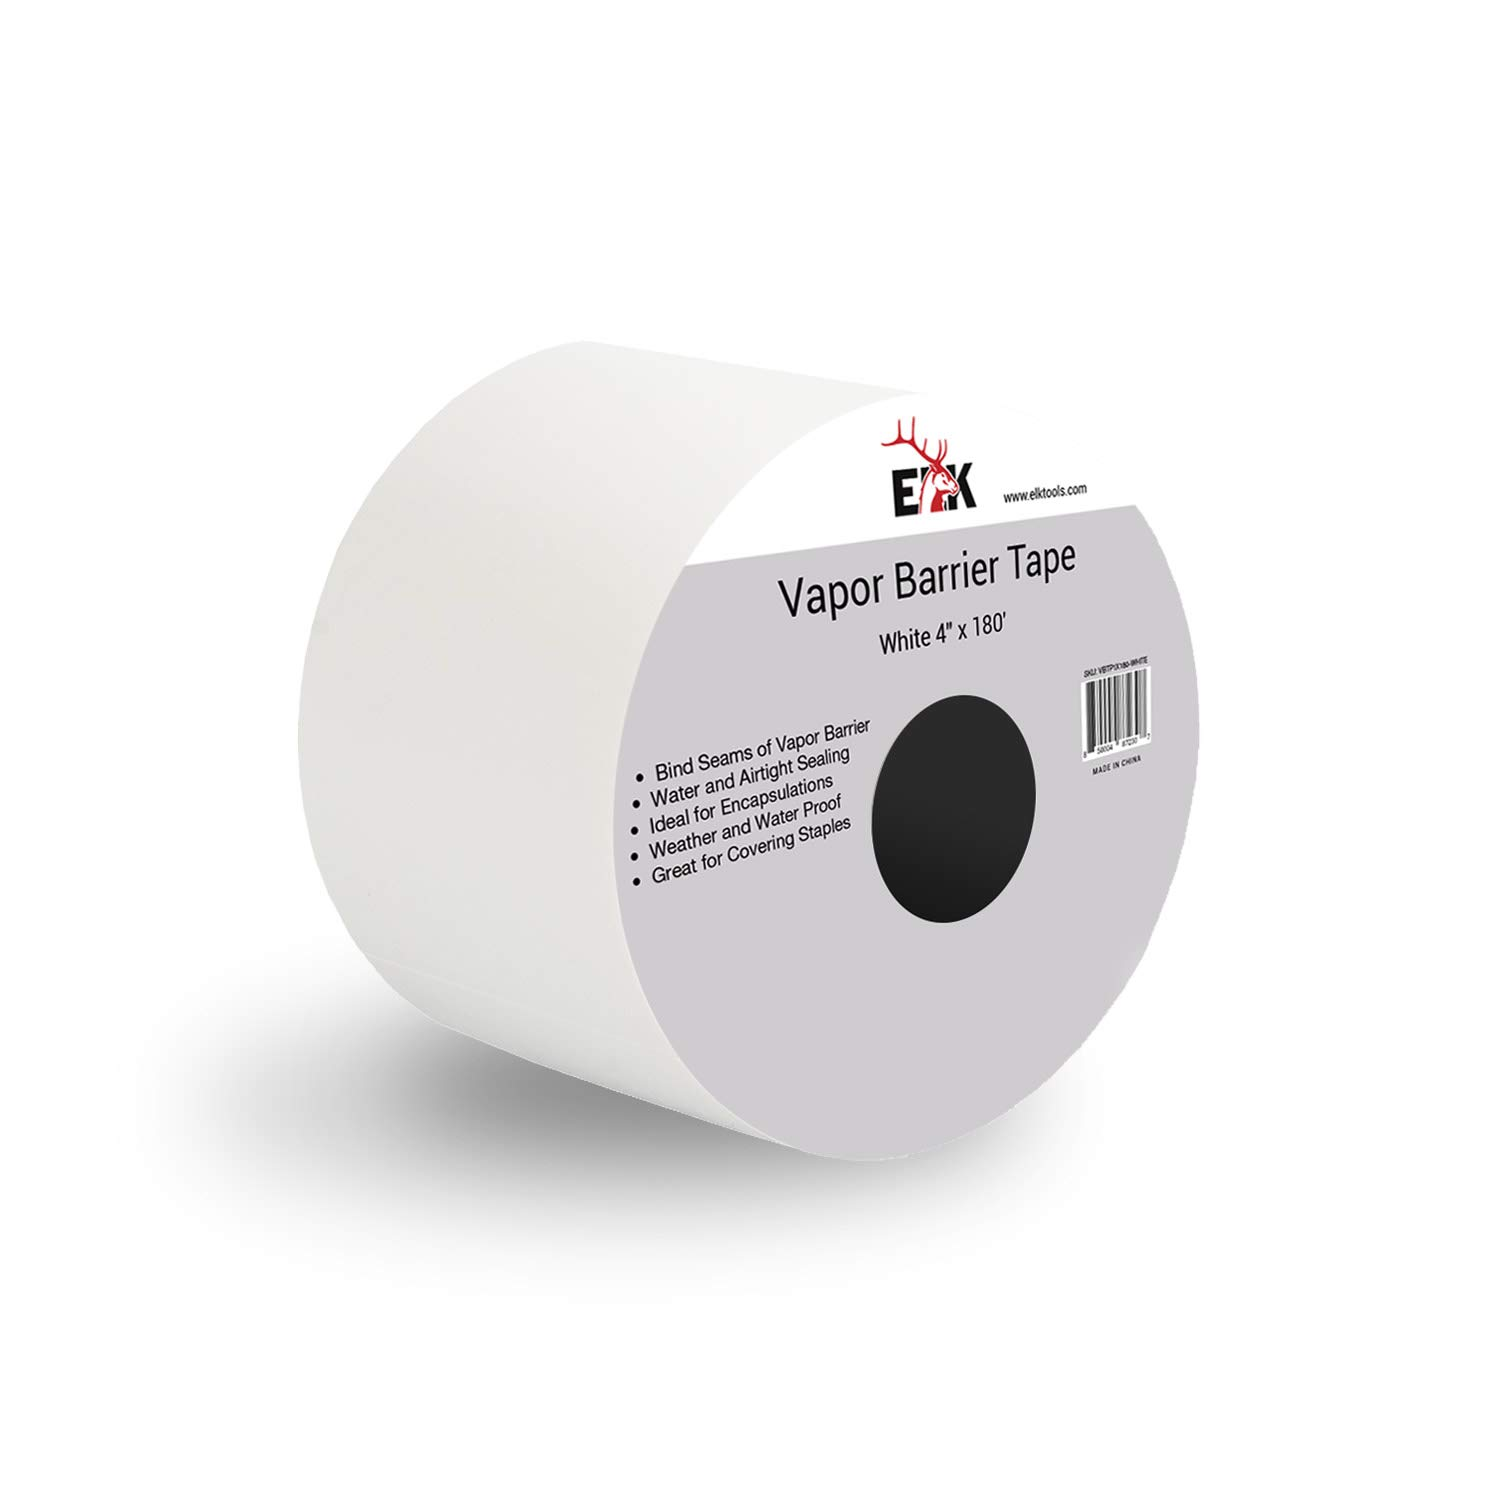 Vapor Barrier Seam Tape 4'' x 180' - Wall and Floor Liner for Crawl Space Moisture Barriers, Encapsulations, Carpet Padding, Stucco Applications and More (White)